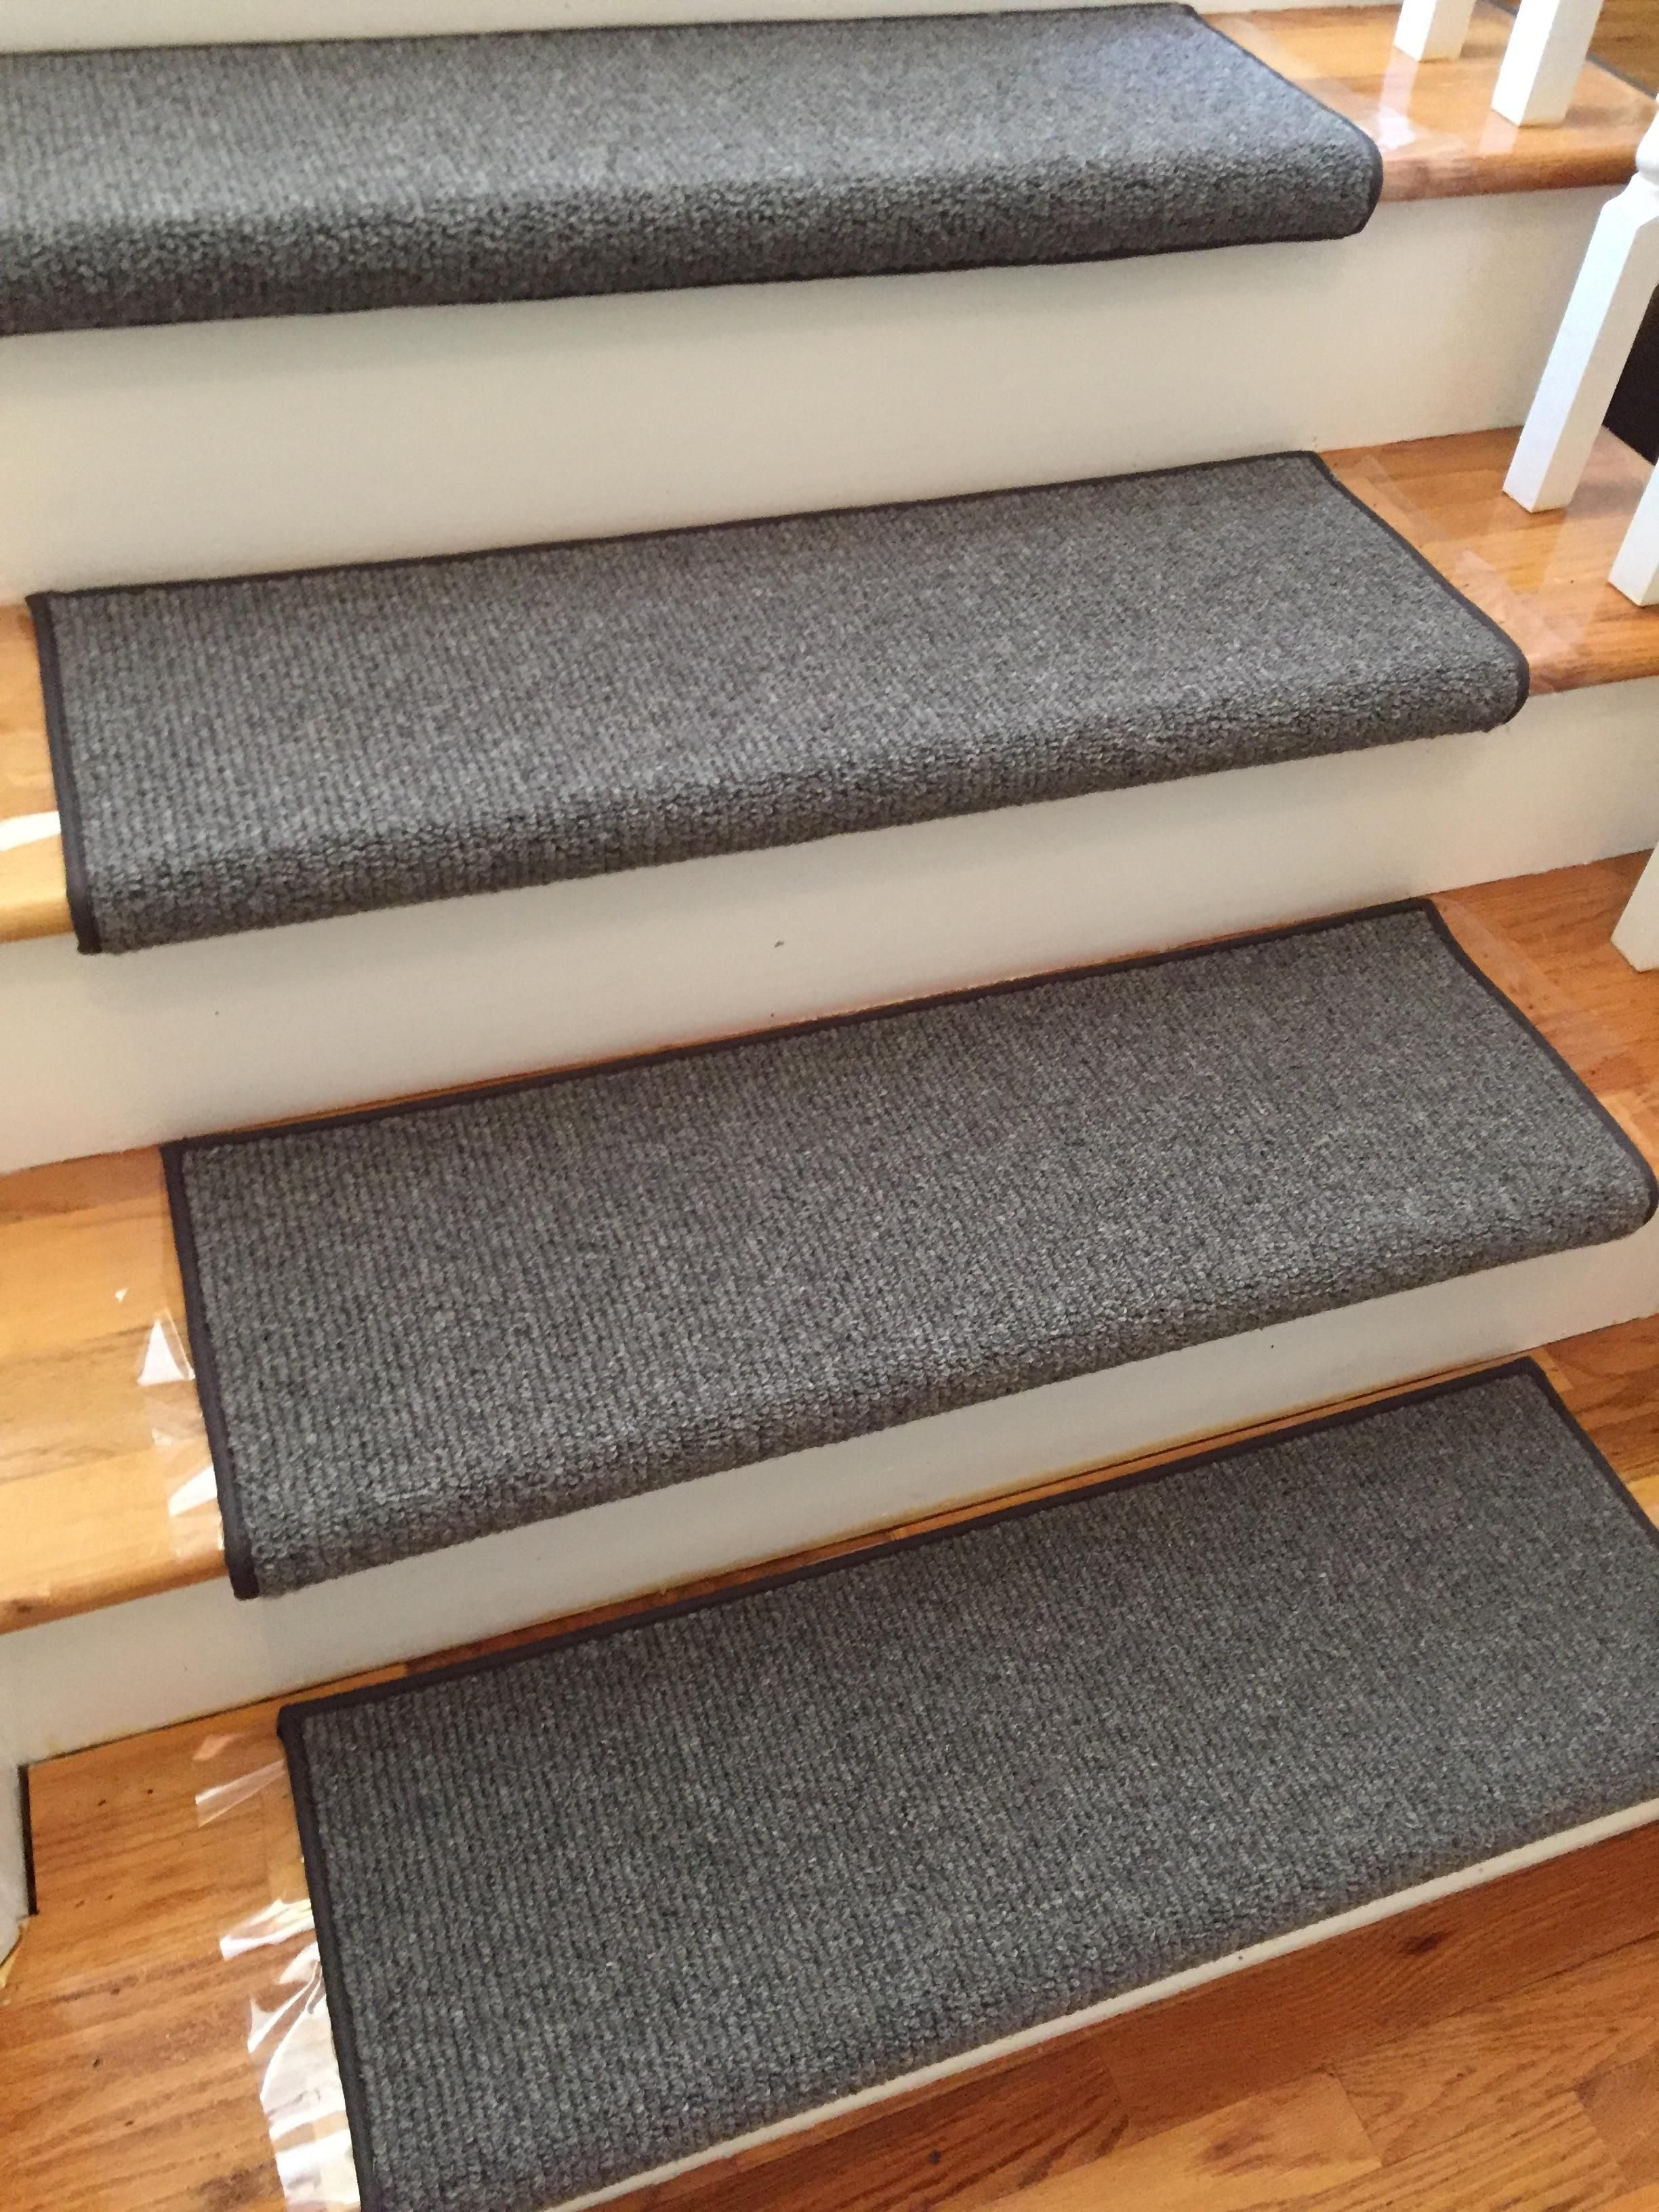 Heathercord Graphite Wool Blend True Bullnose Carpet Stair Tread Runner Replacement For Style Comfort A Stair Runner Carpet Buying Carpet Carpet Stair Treads